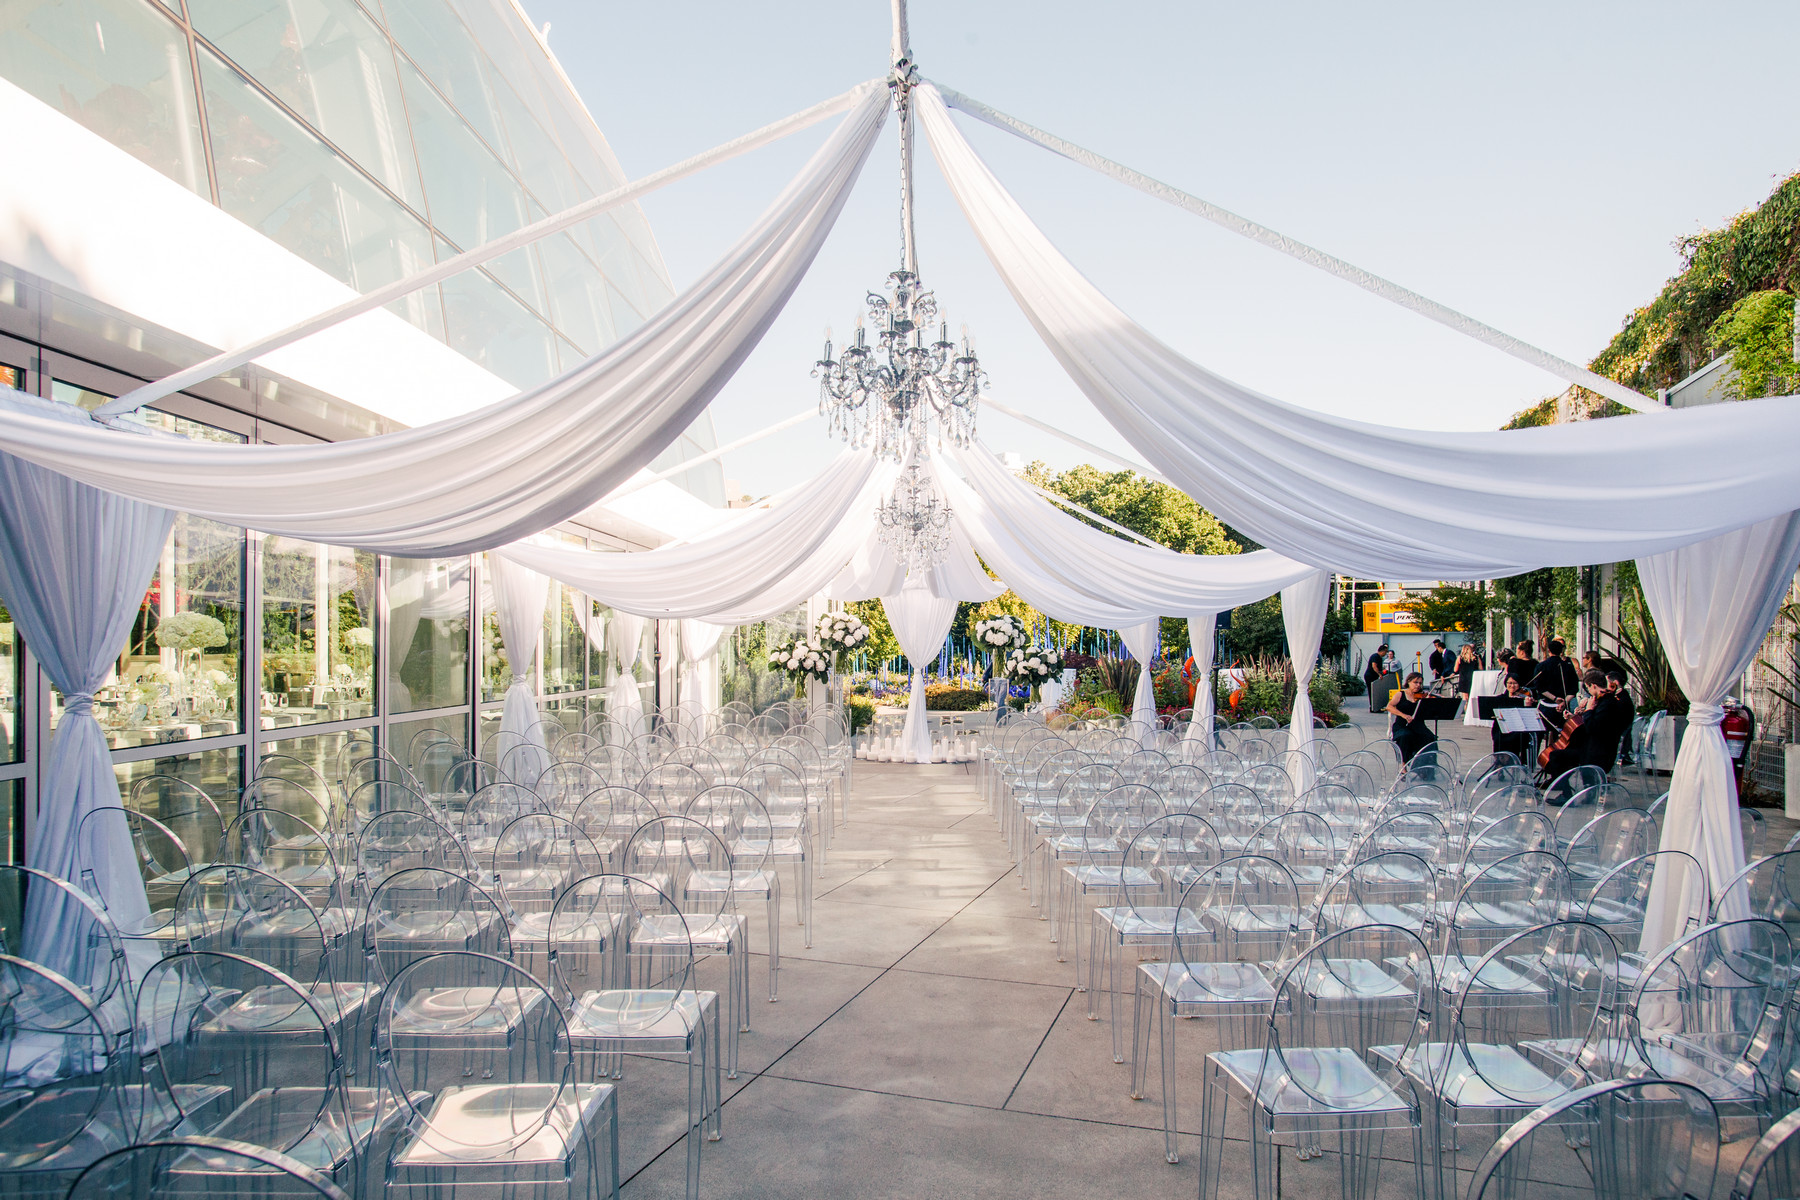 reception-at-chihuly-garden-glass-seattle-ghost-chairs-tent-johnandjoseph-seattle-wedding-photographers.jpgreception-at-chihuly-garden-glass-seattle-ghost-chairs-tent-johnandjoseph-seattle-wedding-photographers